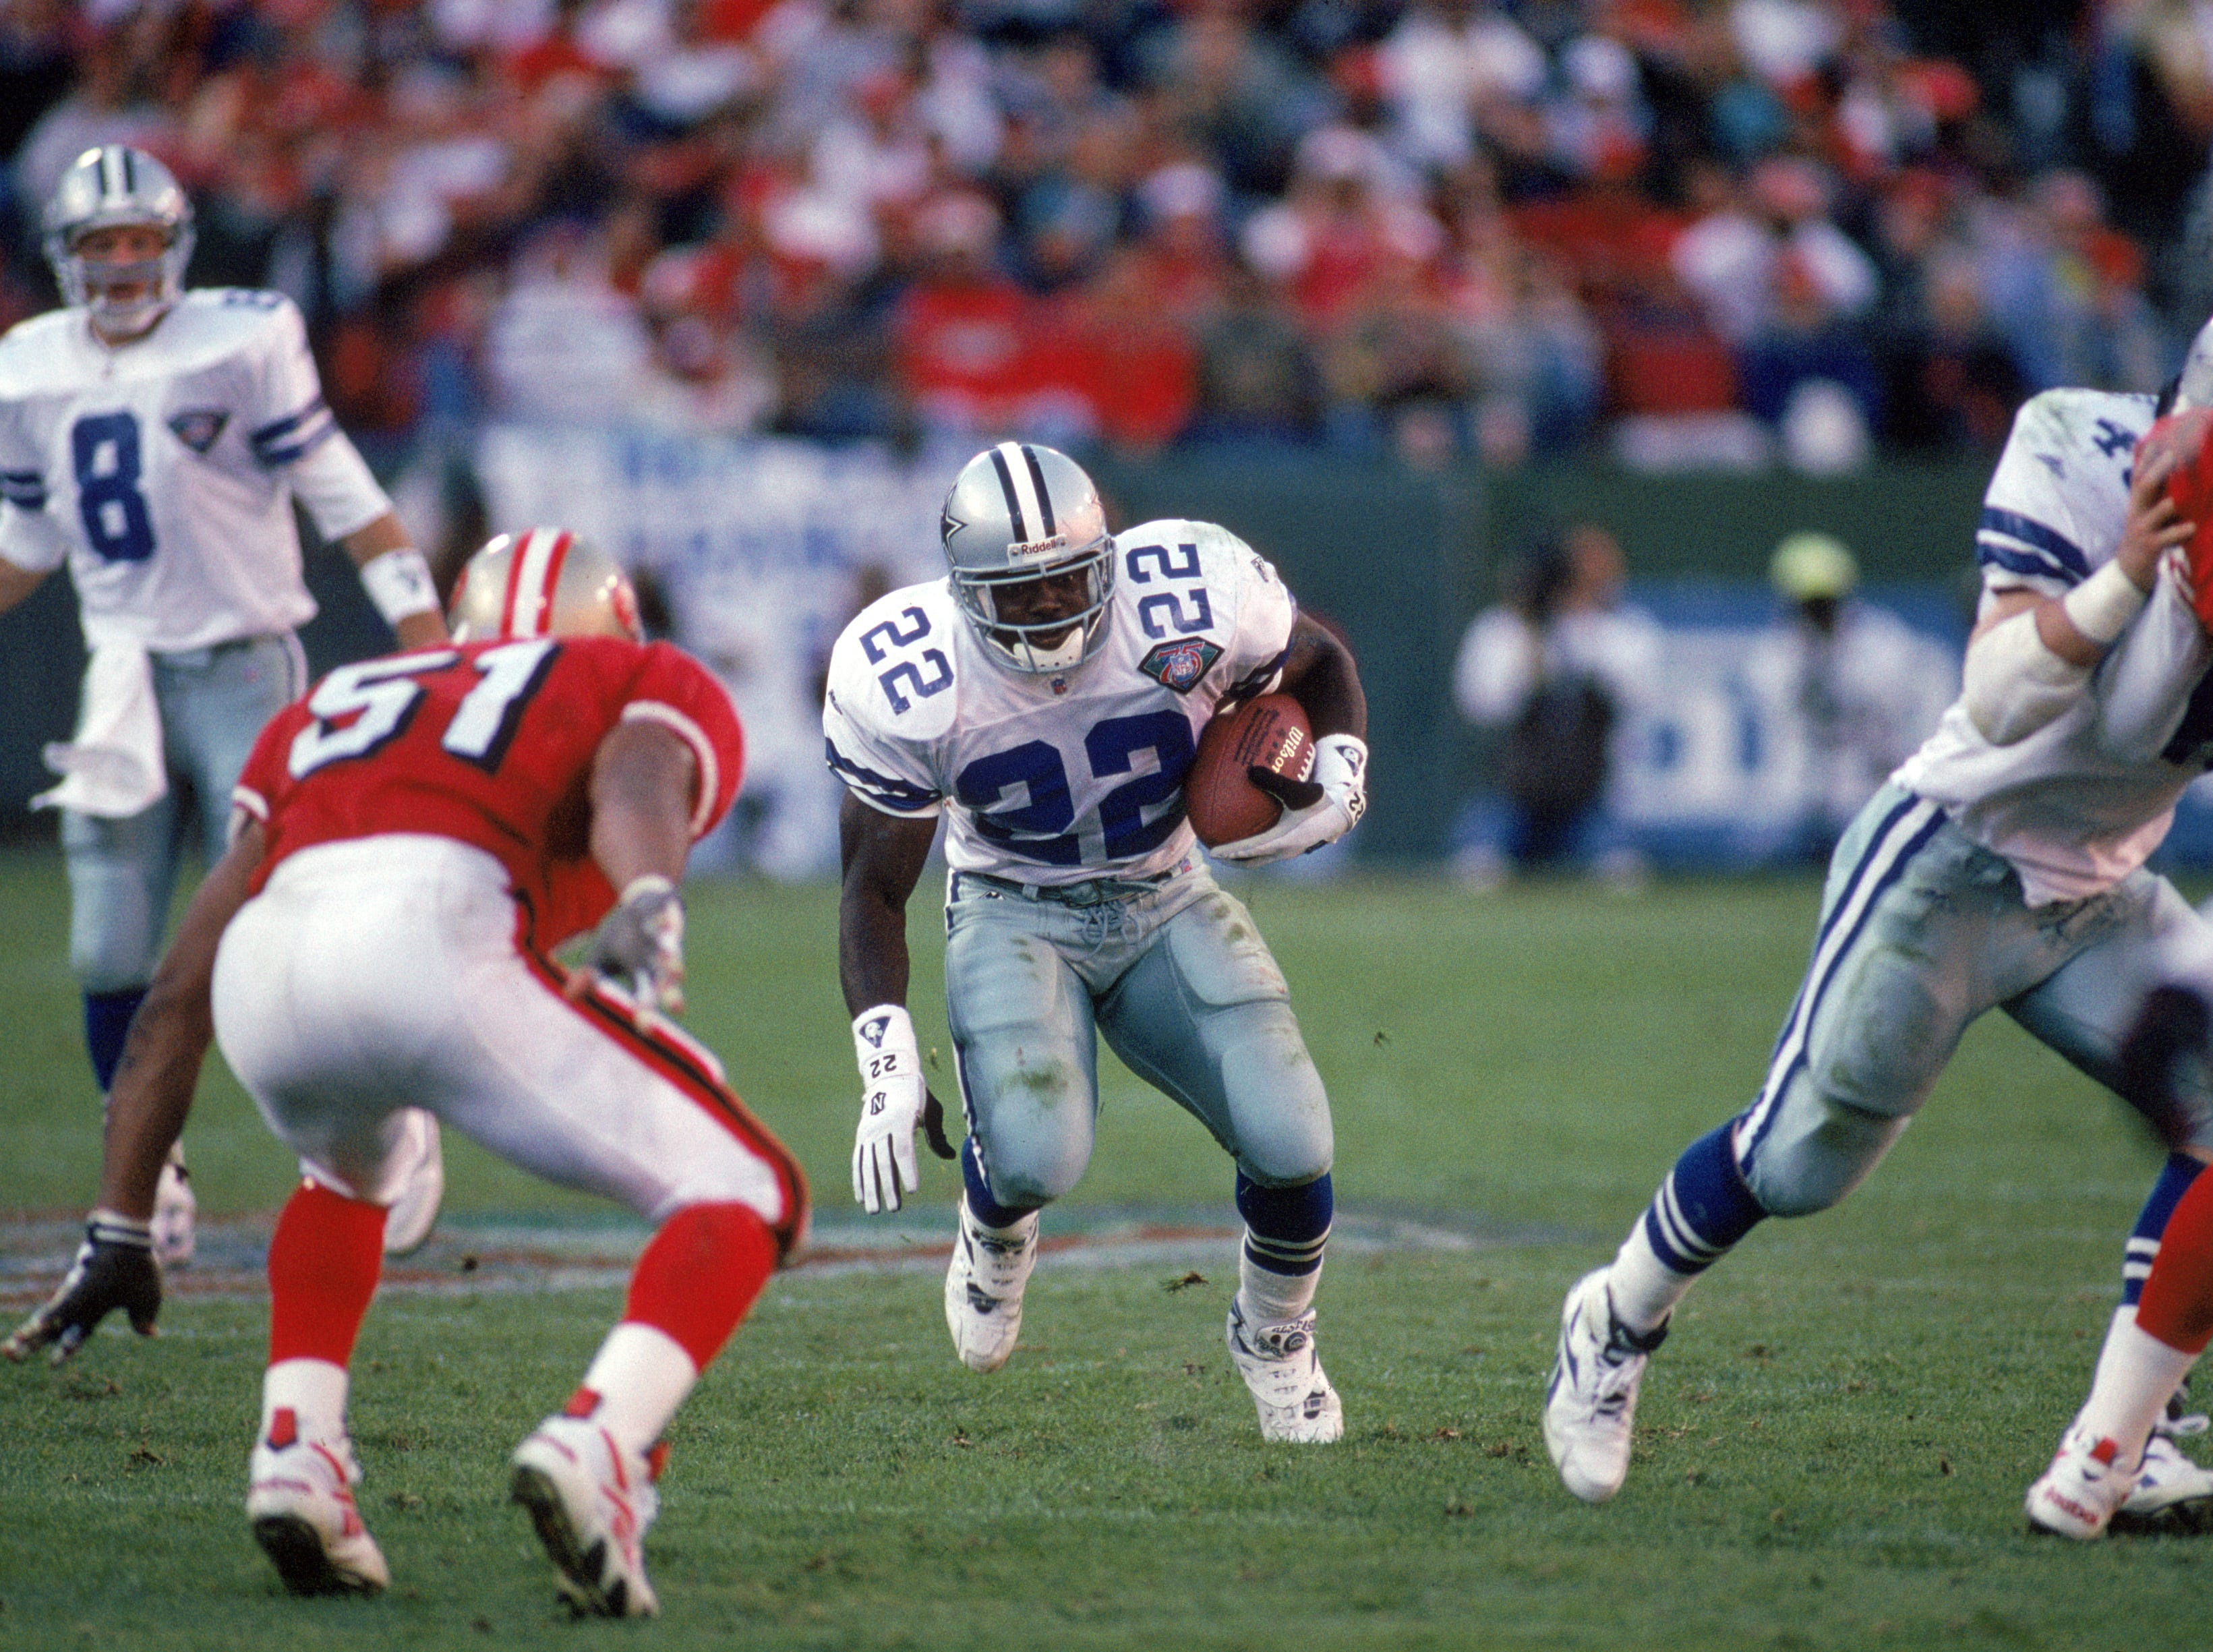 SAN FRANCISCO - NOVEMBER 13:  Running back Emmitt Smith #22 of the Dallas Cowboys rushes for yards during a game against the San Francisco 49ers at Candlestick Park on November 13, 1994 in San Francisco, California.  The 49ers won 21-14.  (Photo by George Rose/Getty Images)